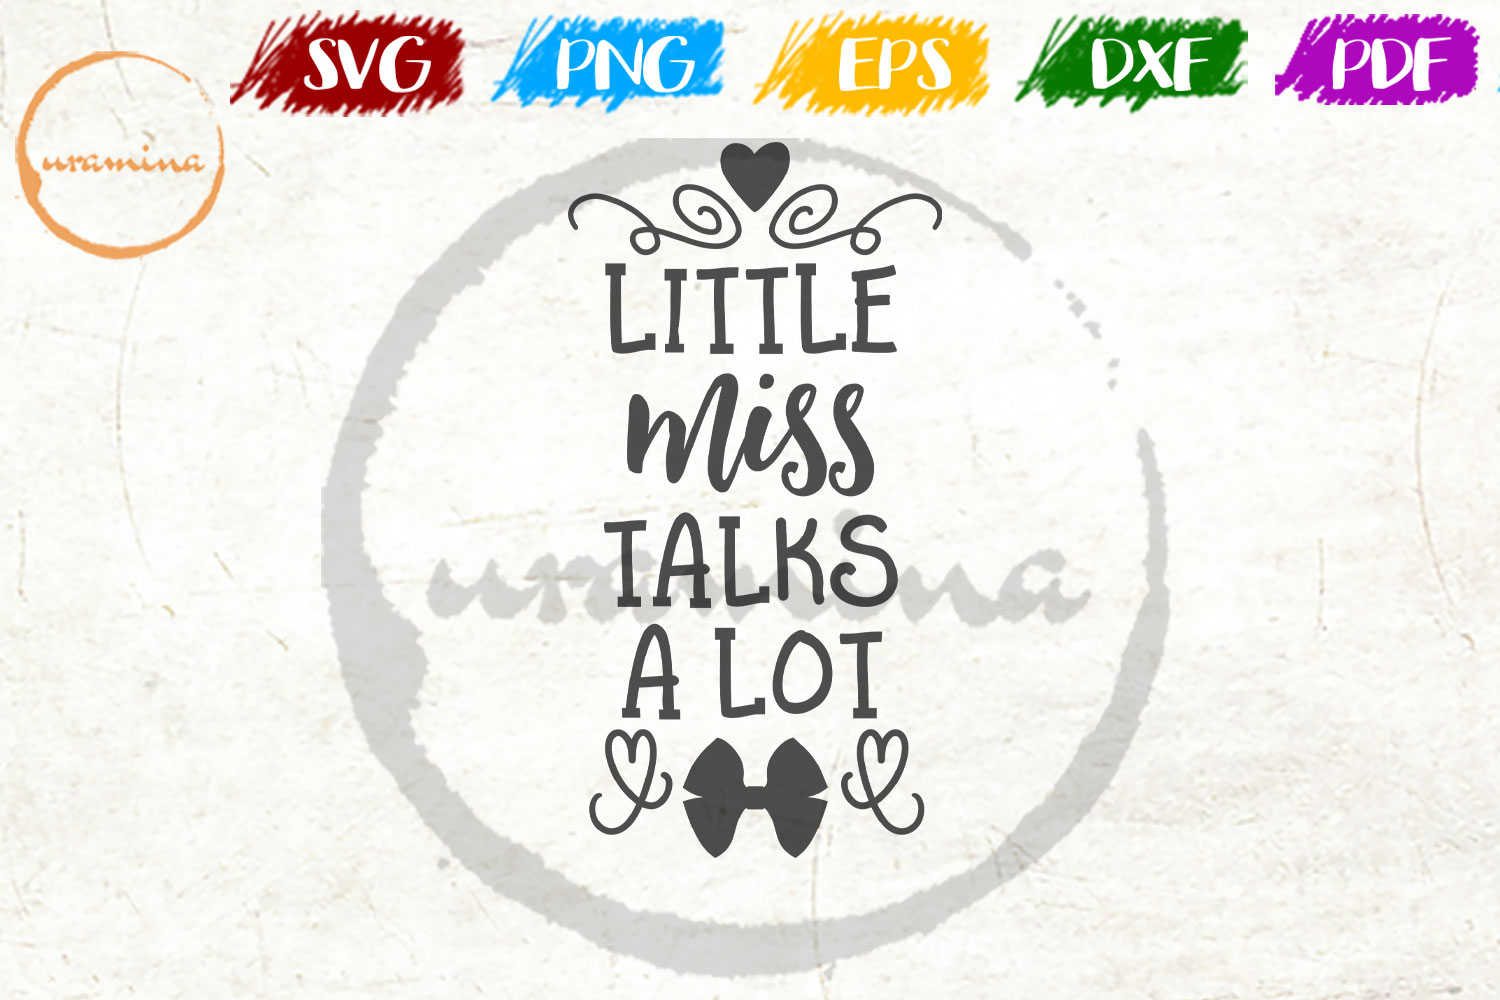 Download Free Little Miss Talks A Lot Graphic By Uramina Creative Fabrica for Cricut Explore, Silhouette and other cutting machines.